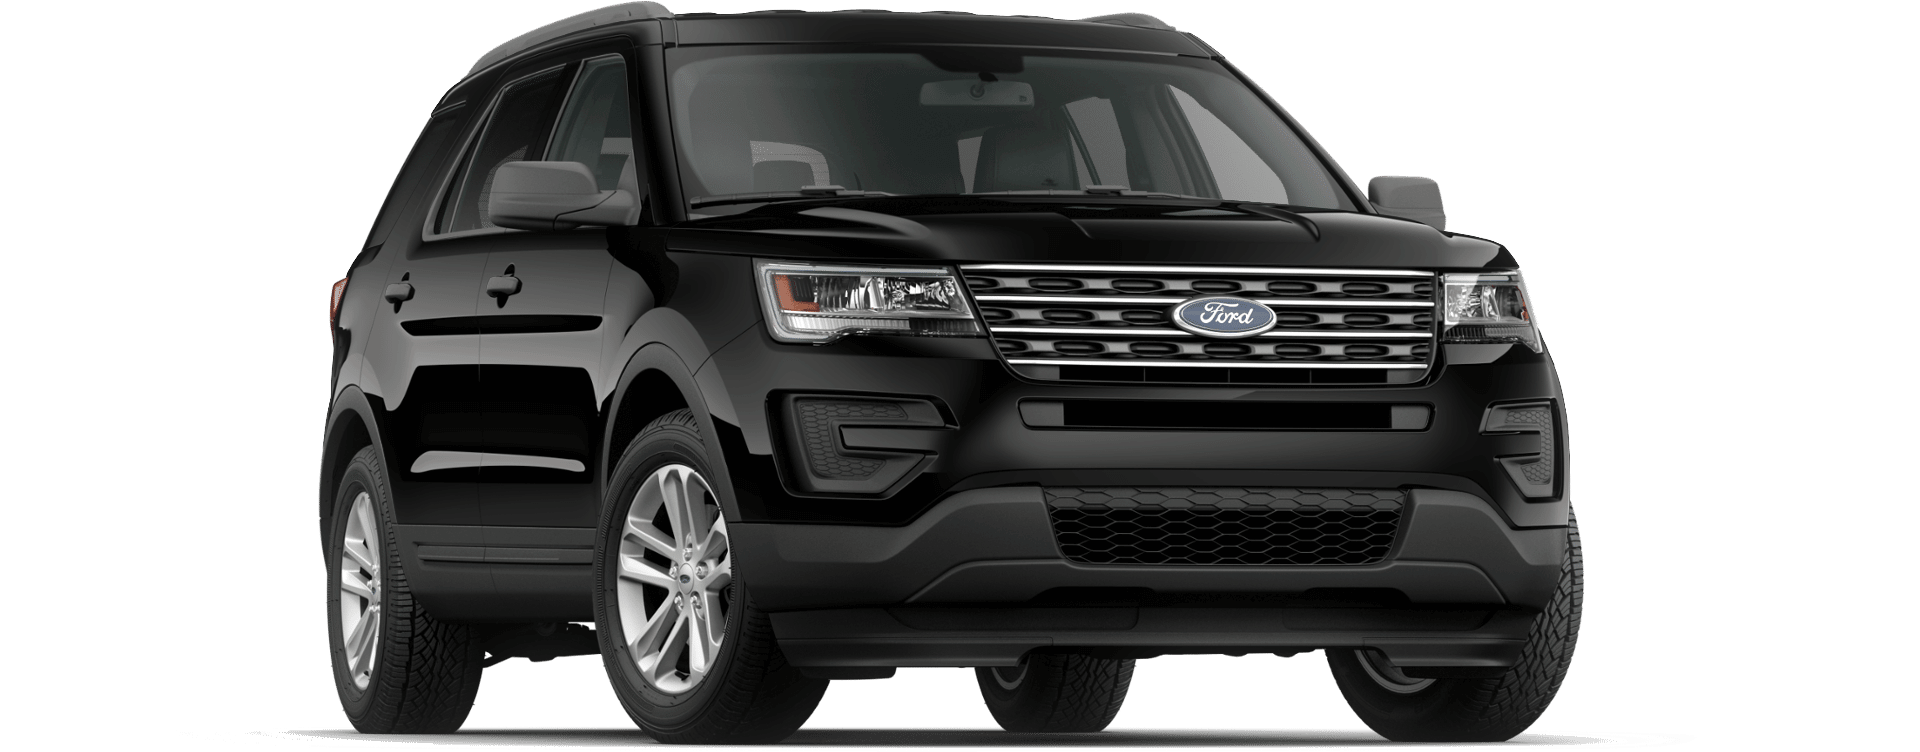 the 2017 ford explorer photos more santa margarita ford. Black Bedroom Furniture Sets. Home Design Ideas